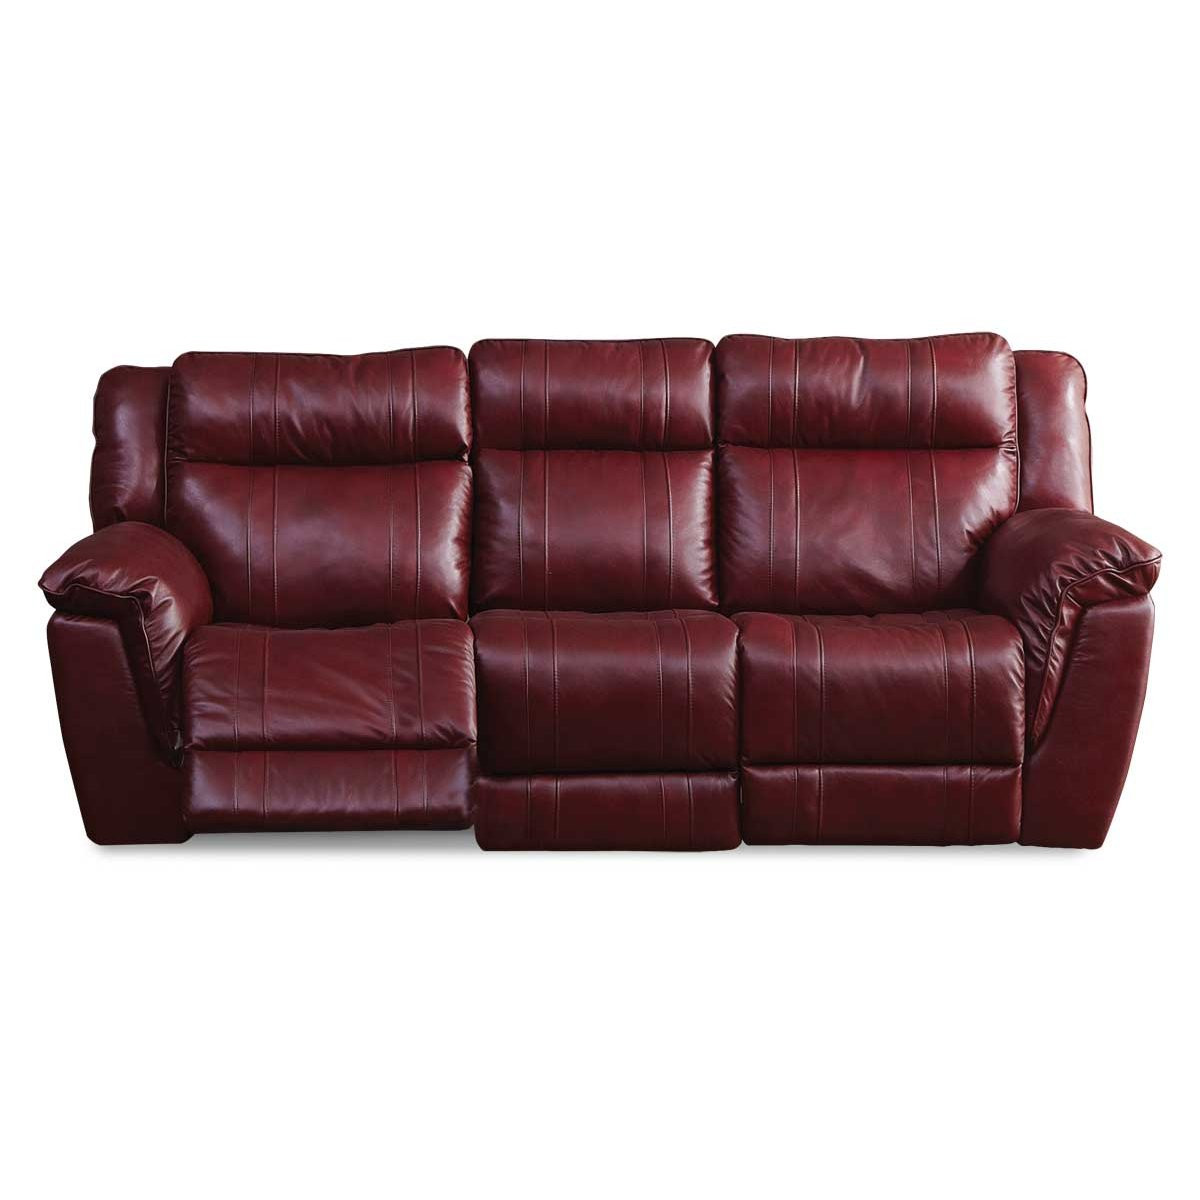 Best ideas about Red Recliner Sofa . Save or Pin Red Recliner Sofa Bailey Red Reclining Sofa line Bad Now.